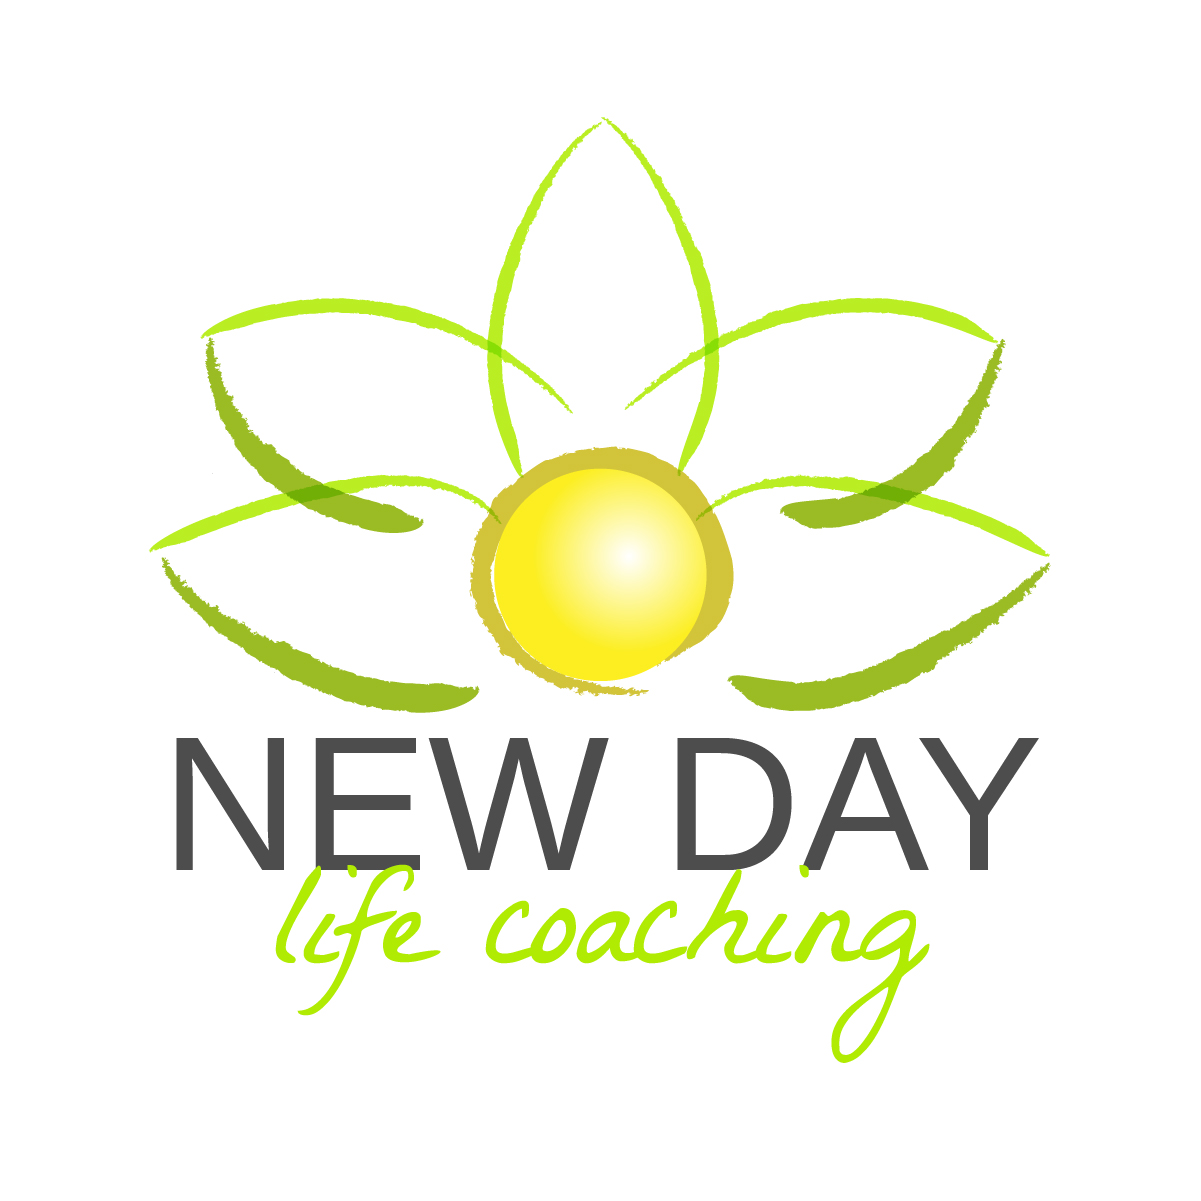 New day life coaching